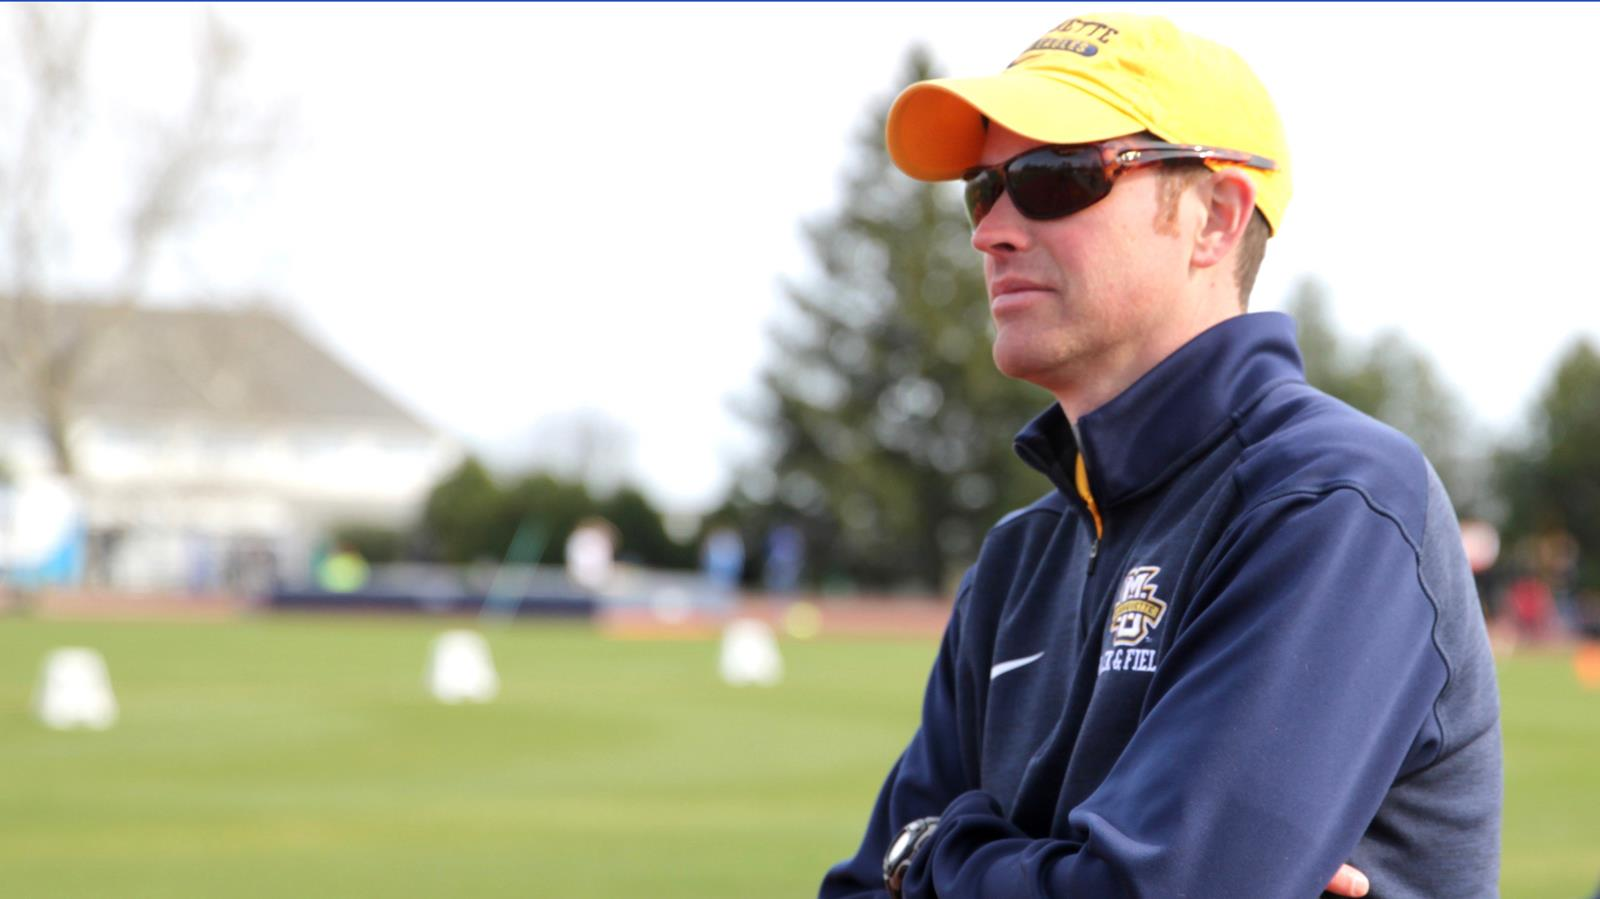 MIKE NELSON TABBED TO HEAD UP XC/TRACK & FIELD PROGRAM